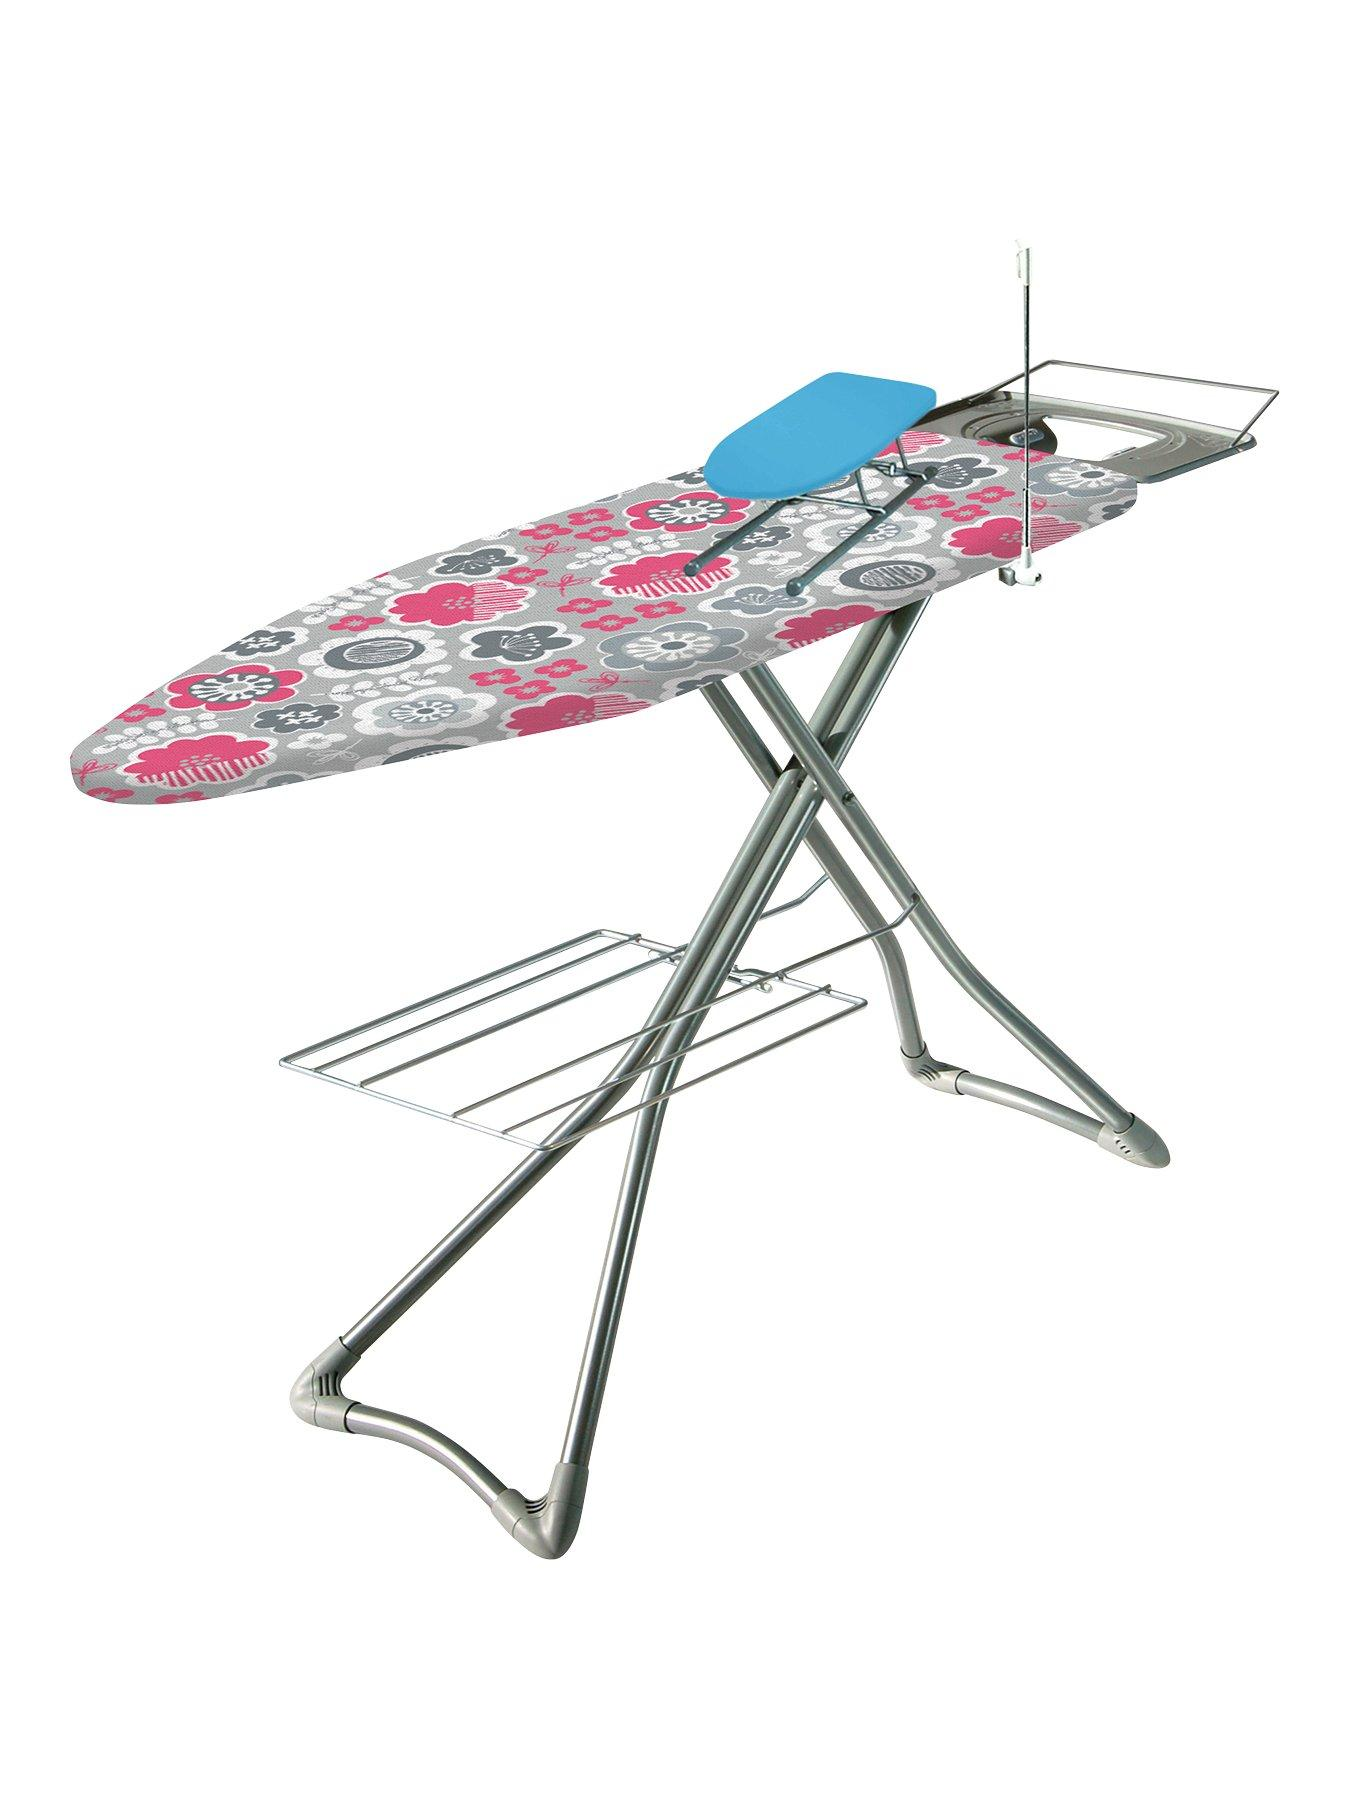 Buy cheap Ironing board minky  compare products prices for best UK deals